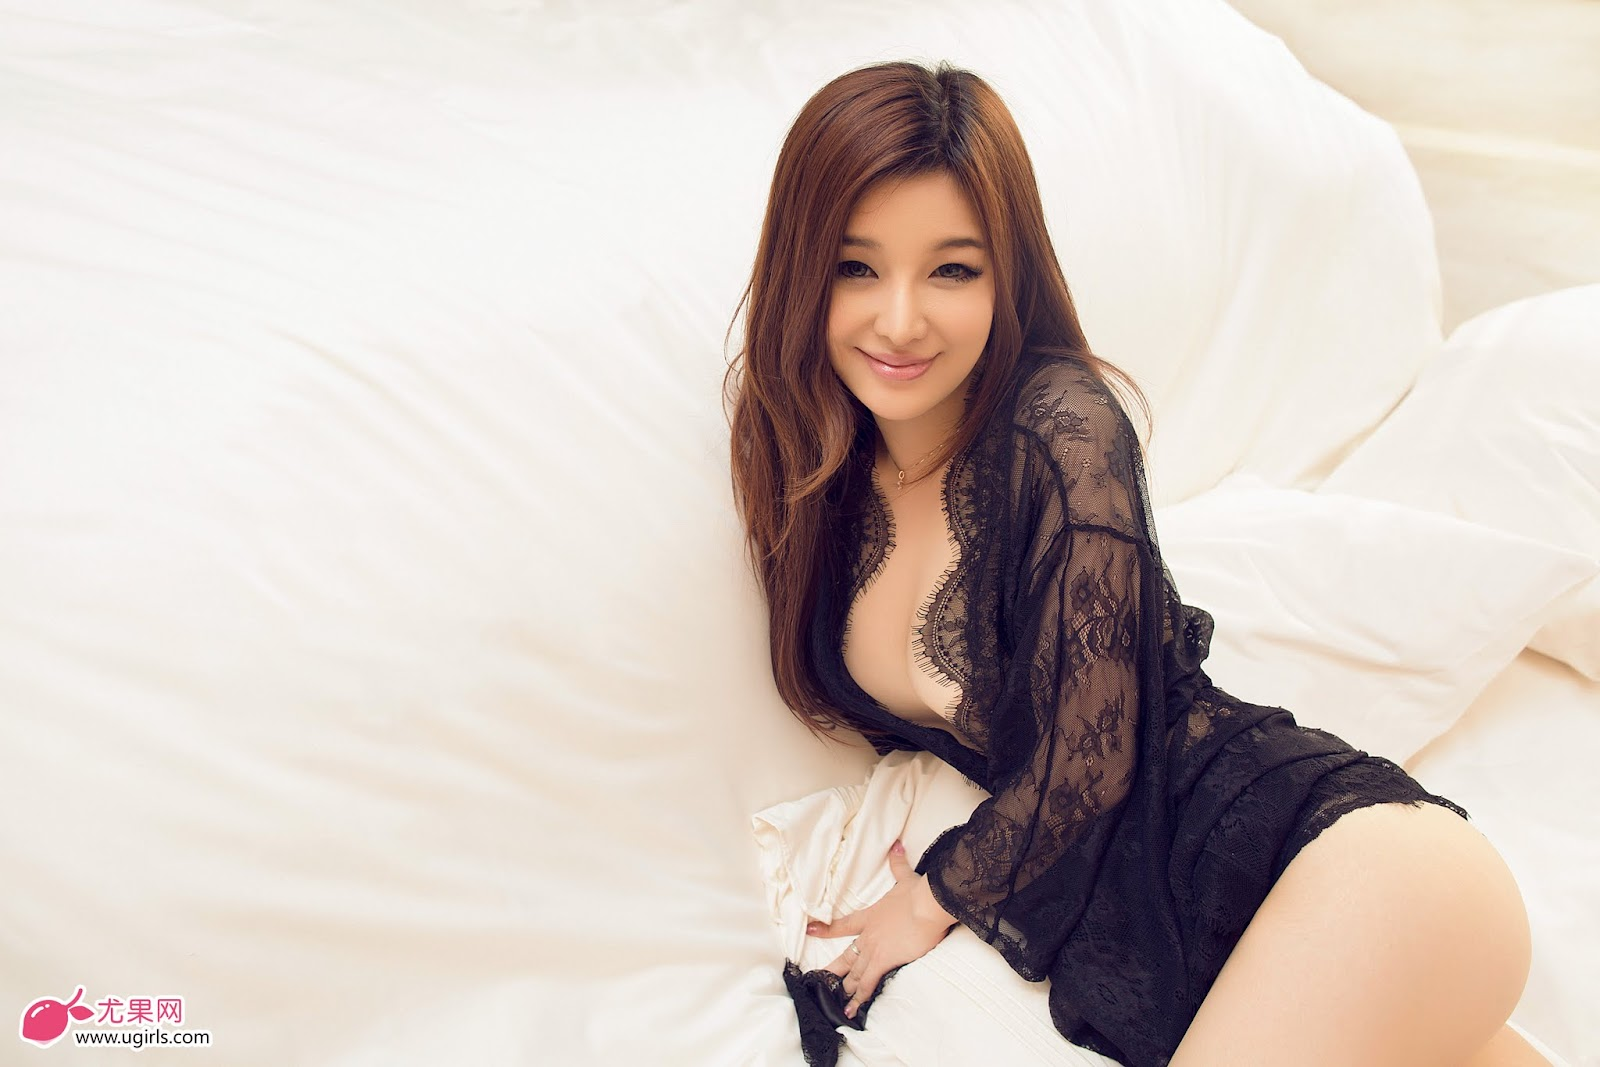 EZ0A0605 - Ugirls No.016 Model 纯小希 (Chun Xiao Xi)